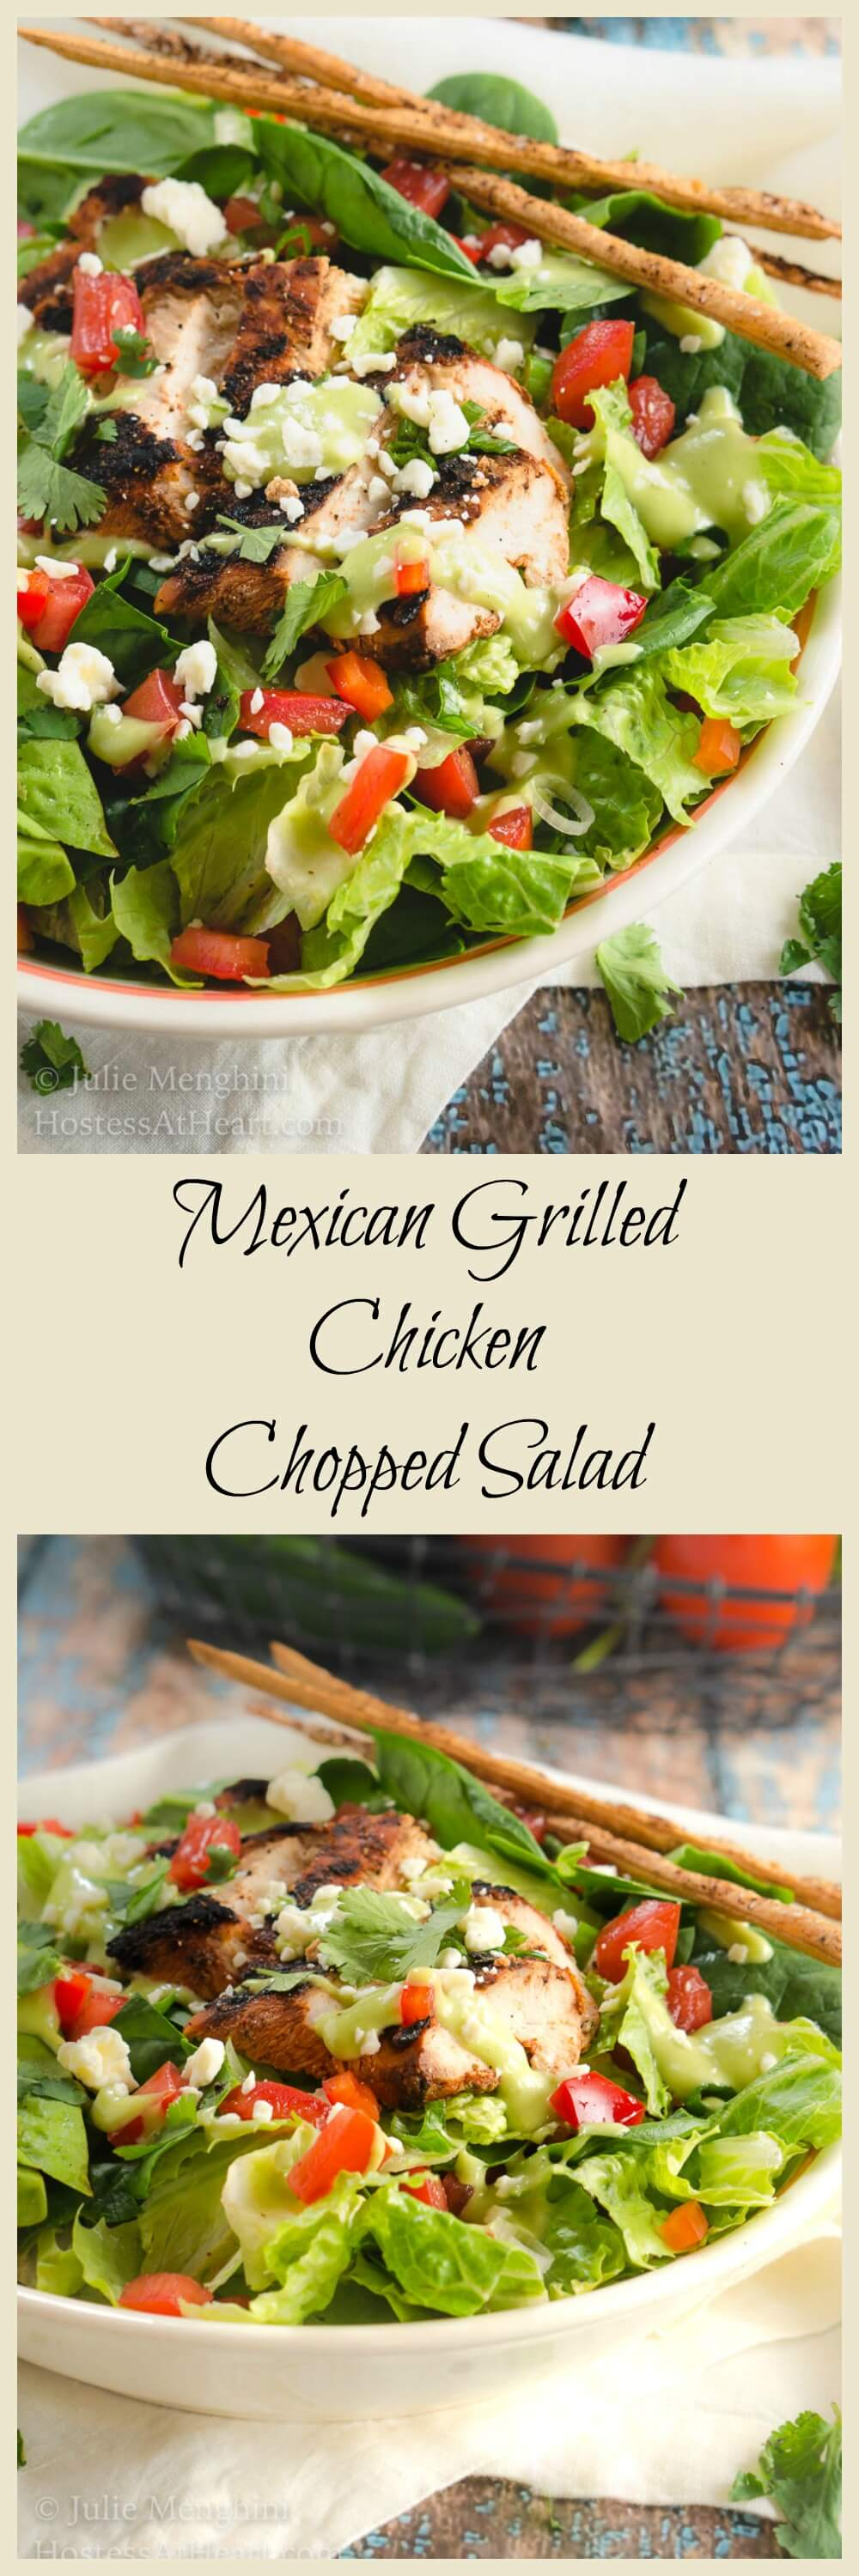 Mexican Grilled Chicken Chopped Salad with Honey-Jalapeno Dressing is a party of flavors and textures   HostessAtHeart.com